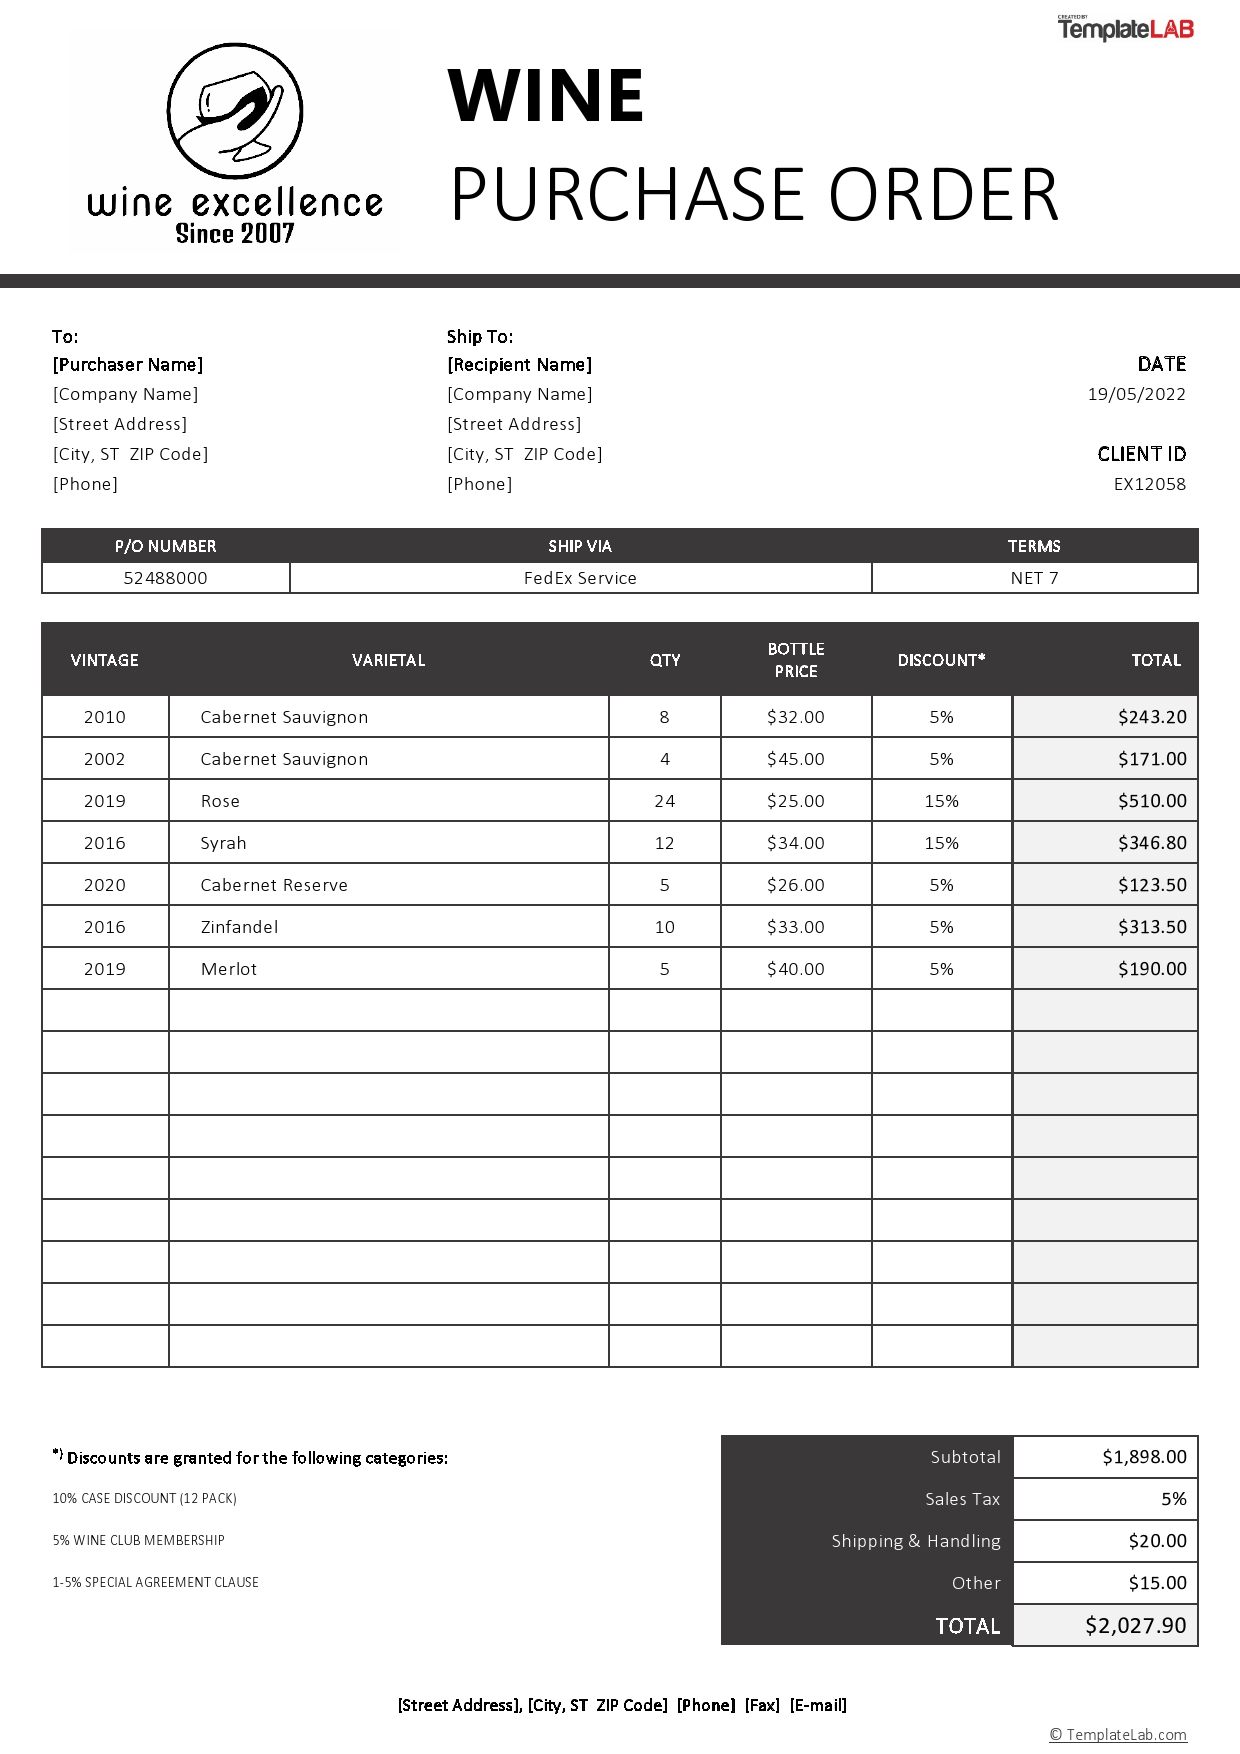 Free Wine Purchase Order Template